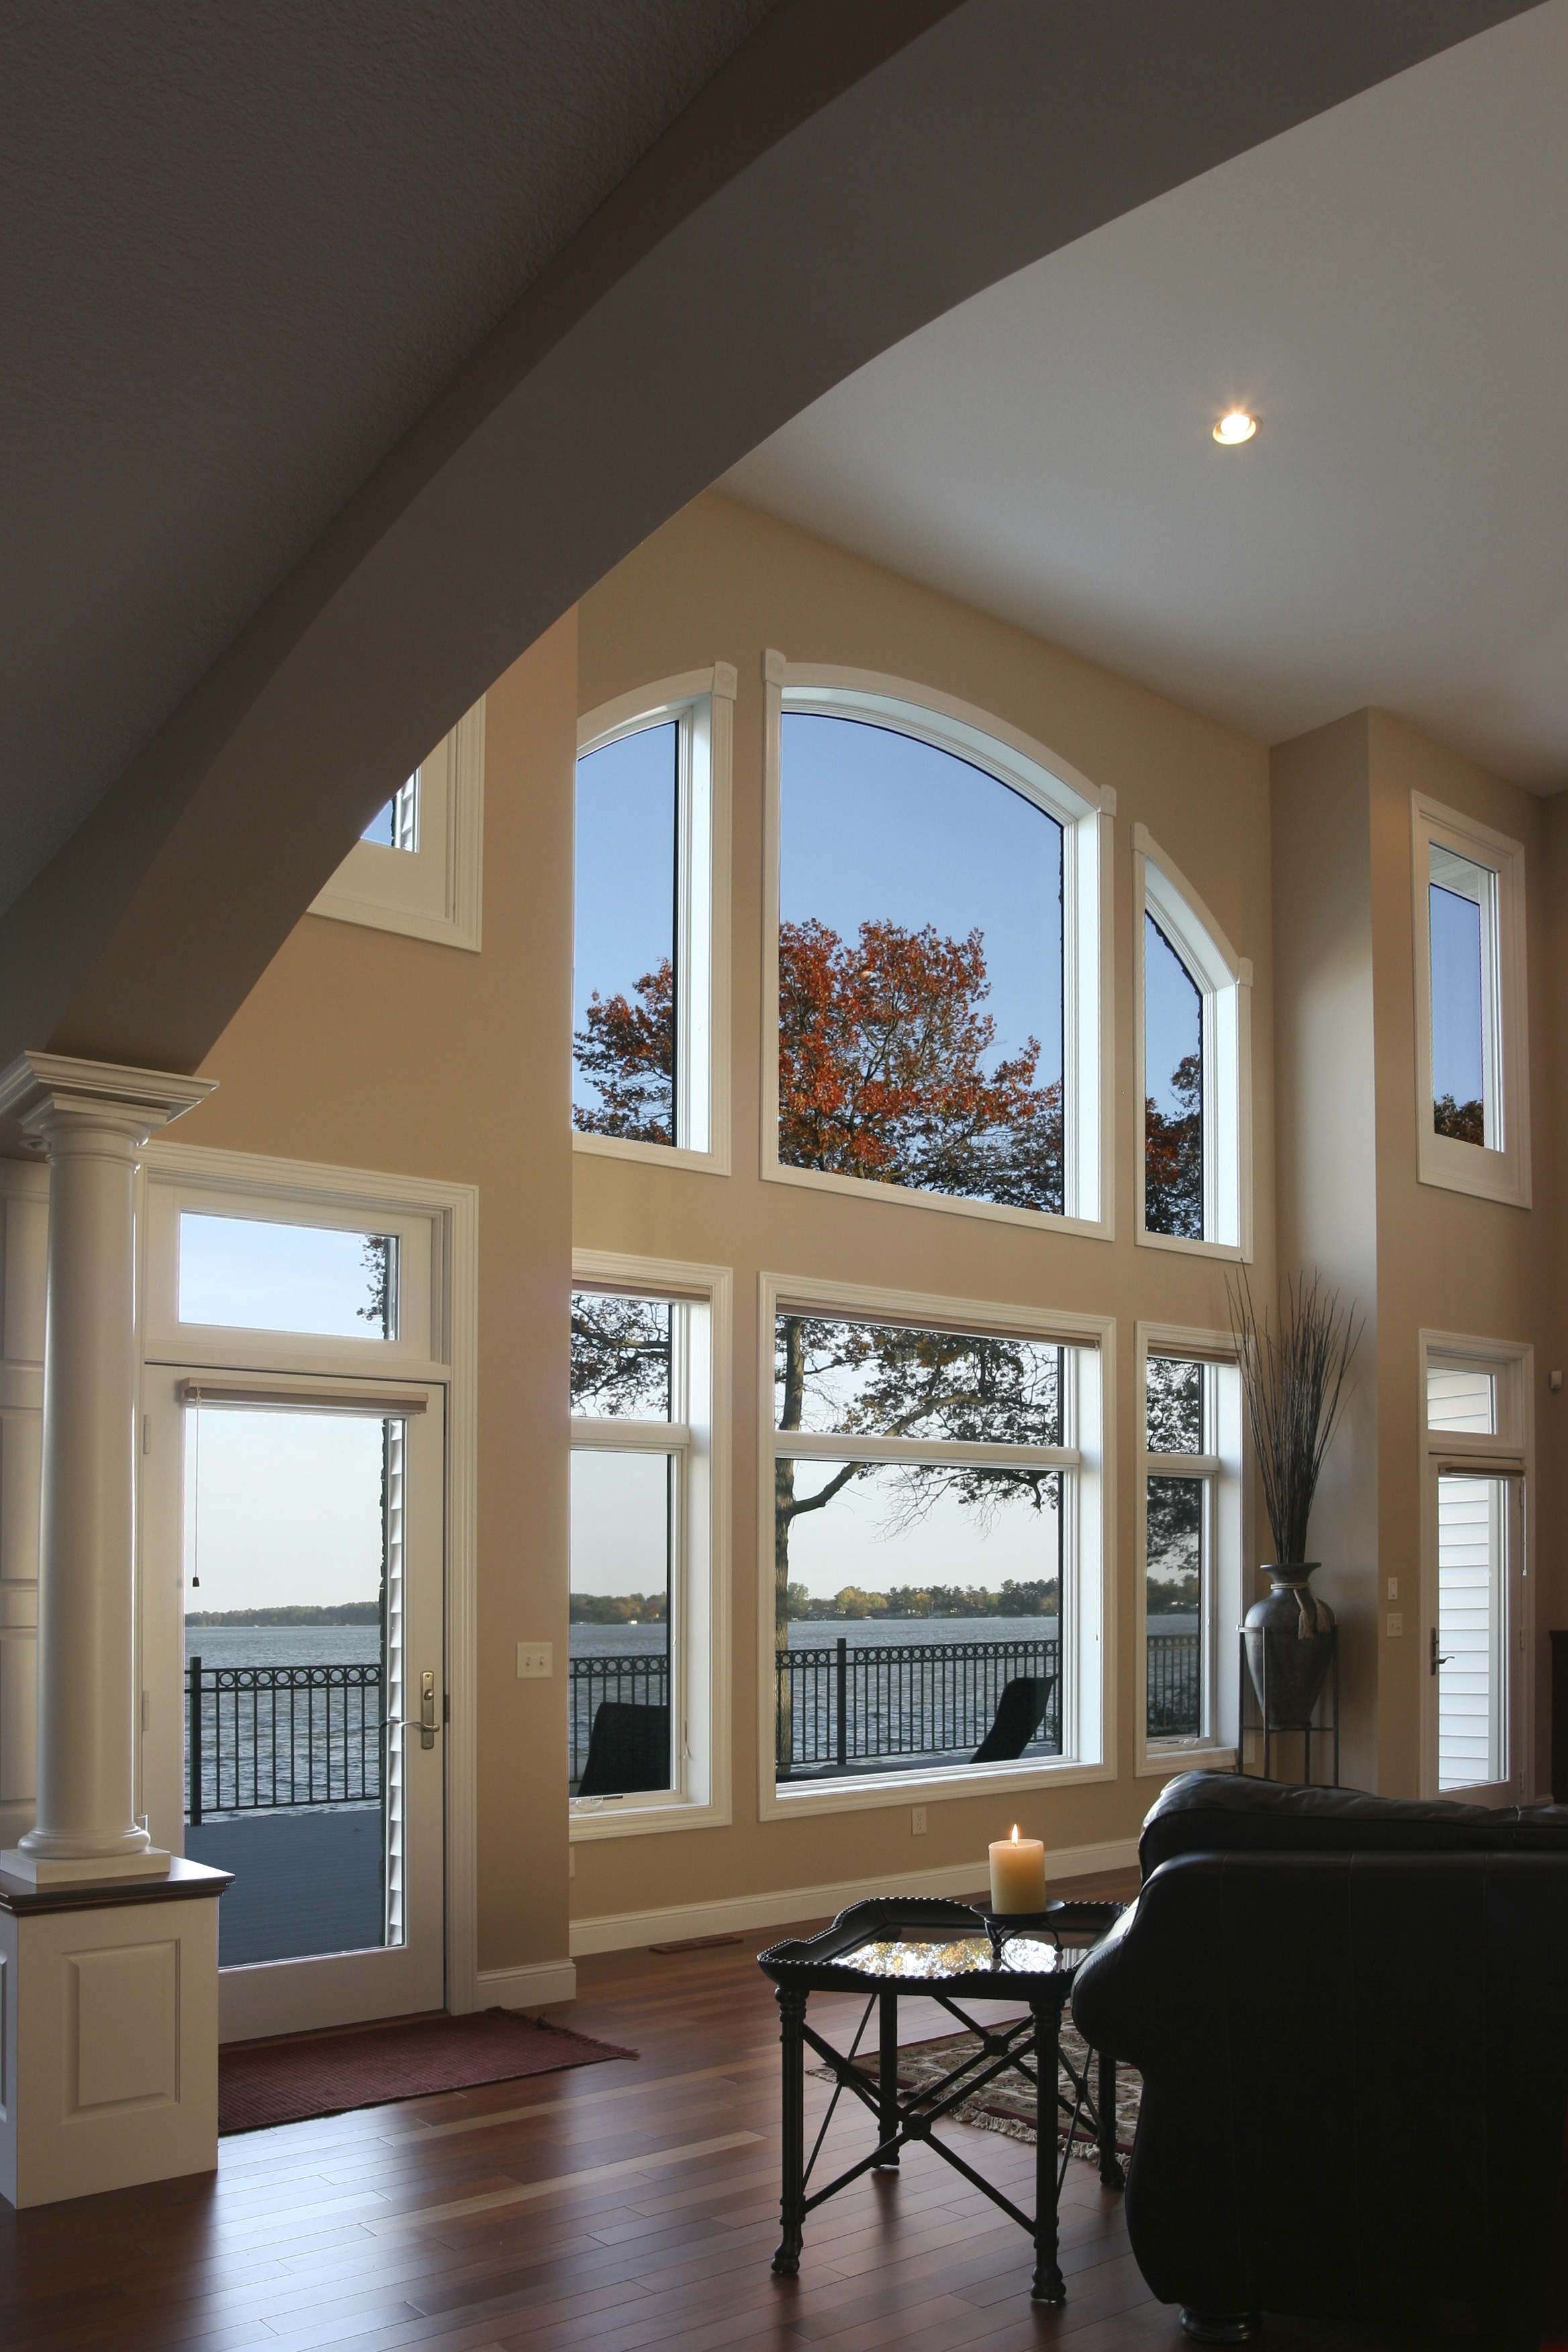 Large living room windows from the inside